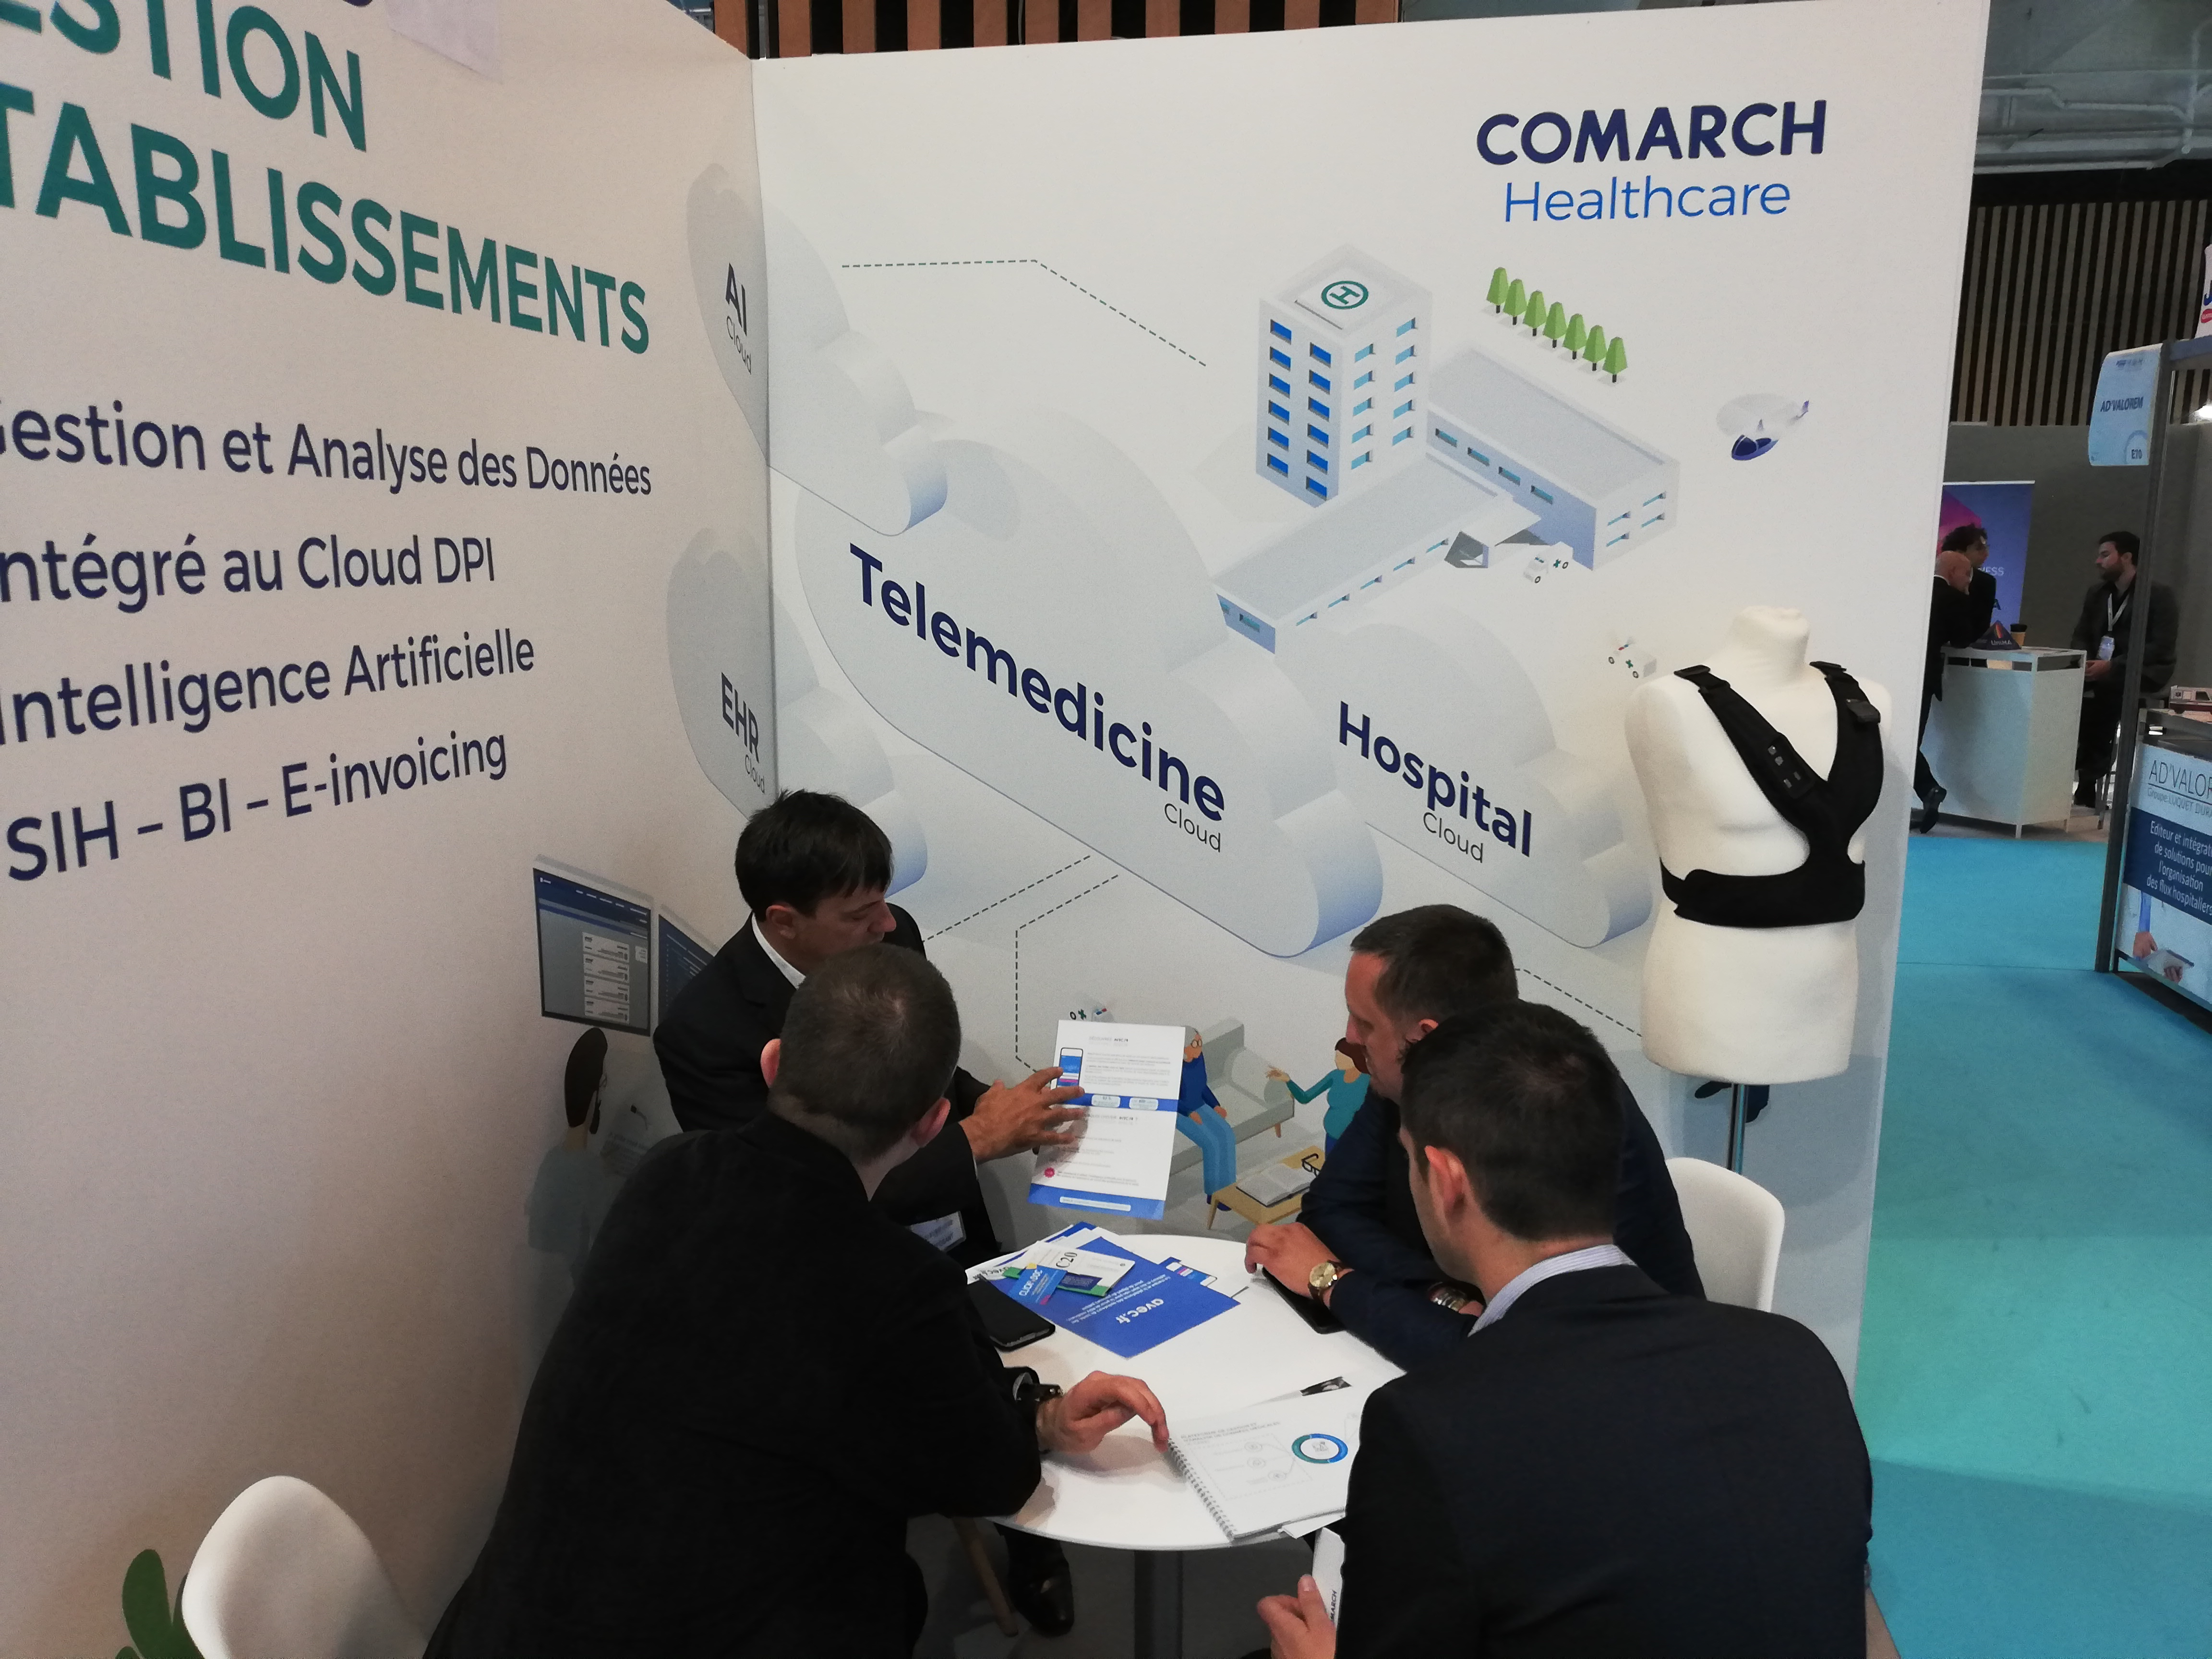 meeting stand comarch healthcare